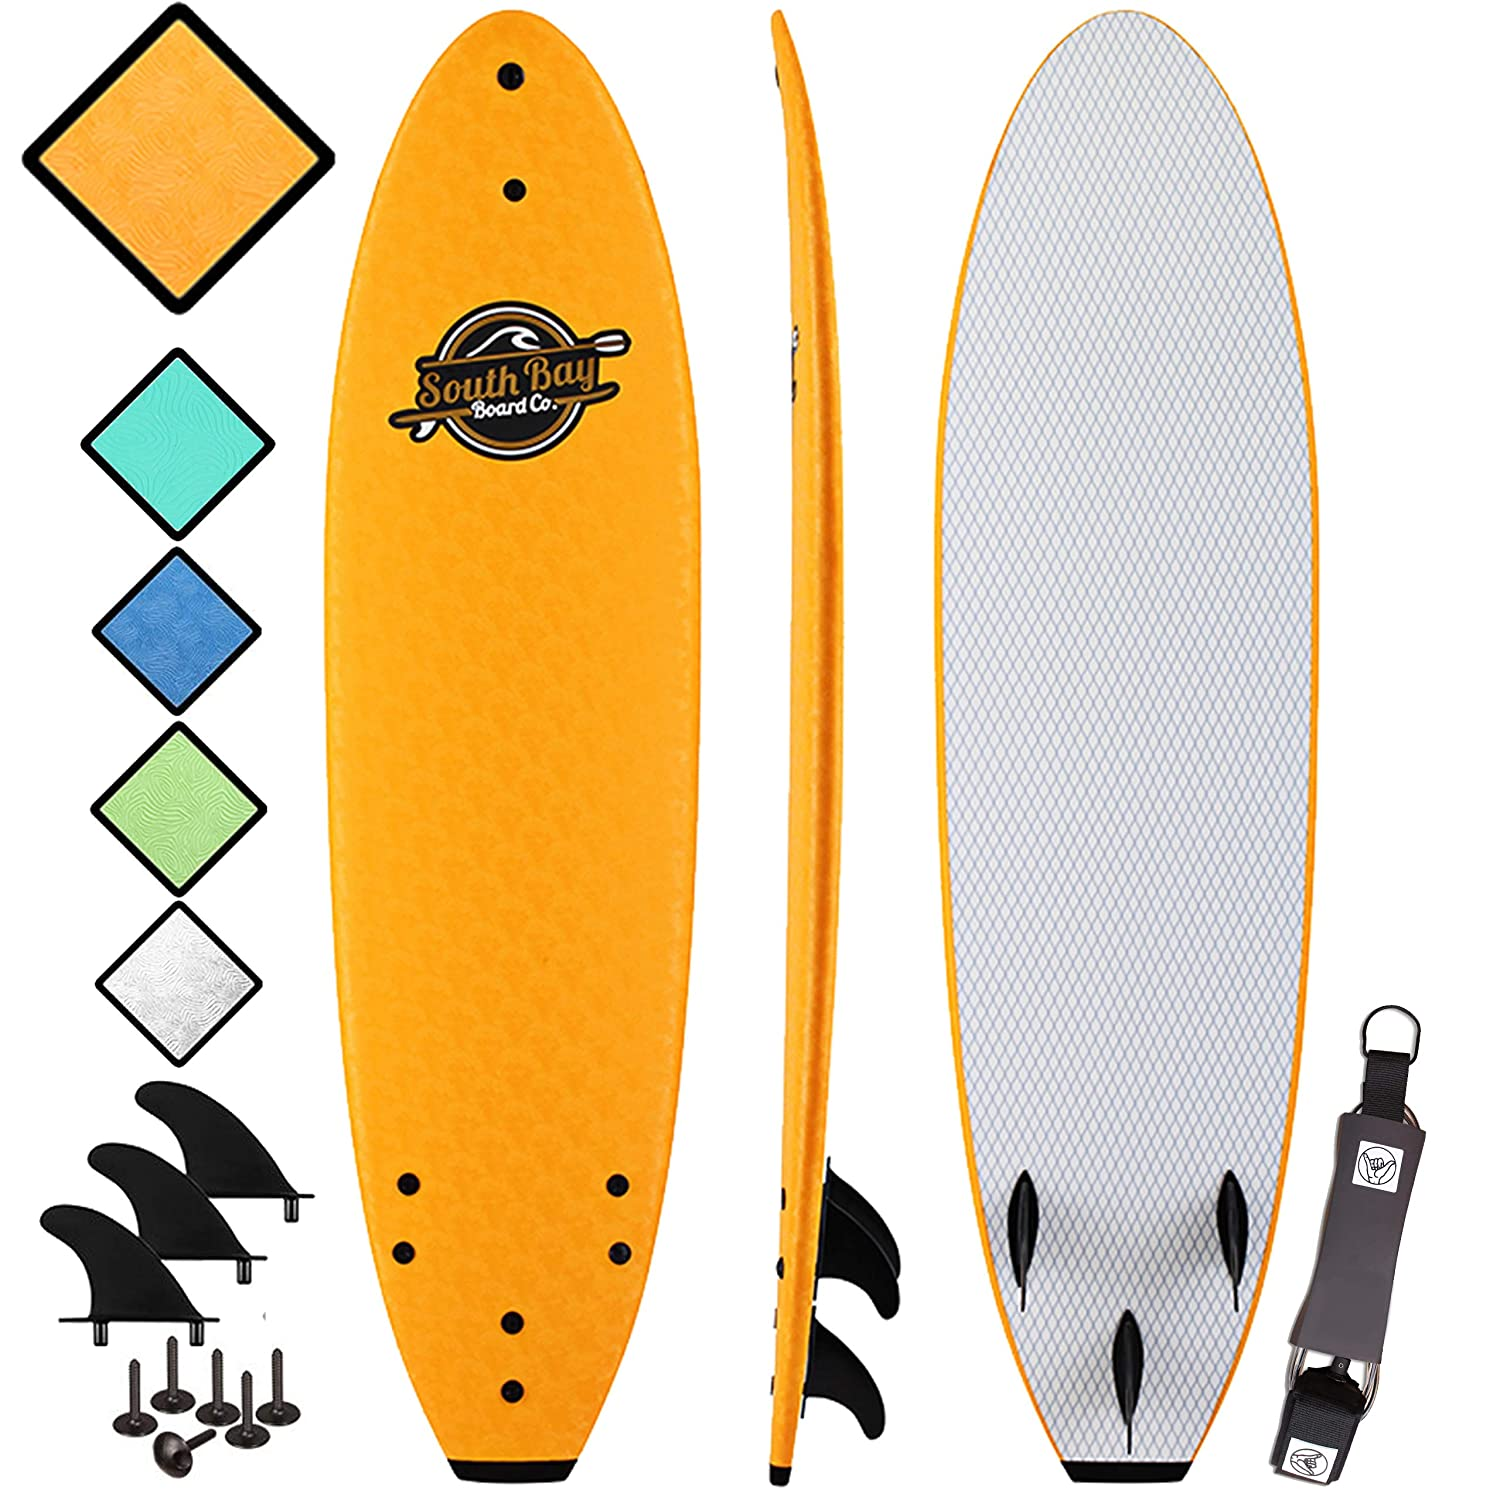 Soft Top Surfboard – Best Foam Surf Board for Beginners, Kids, and Adults – Soft Top Surfboards for Fun Easy Surfing – 7 Ruccus, 8 Verve 8 8 Heritage Surfboards All Wax-Free